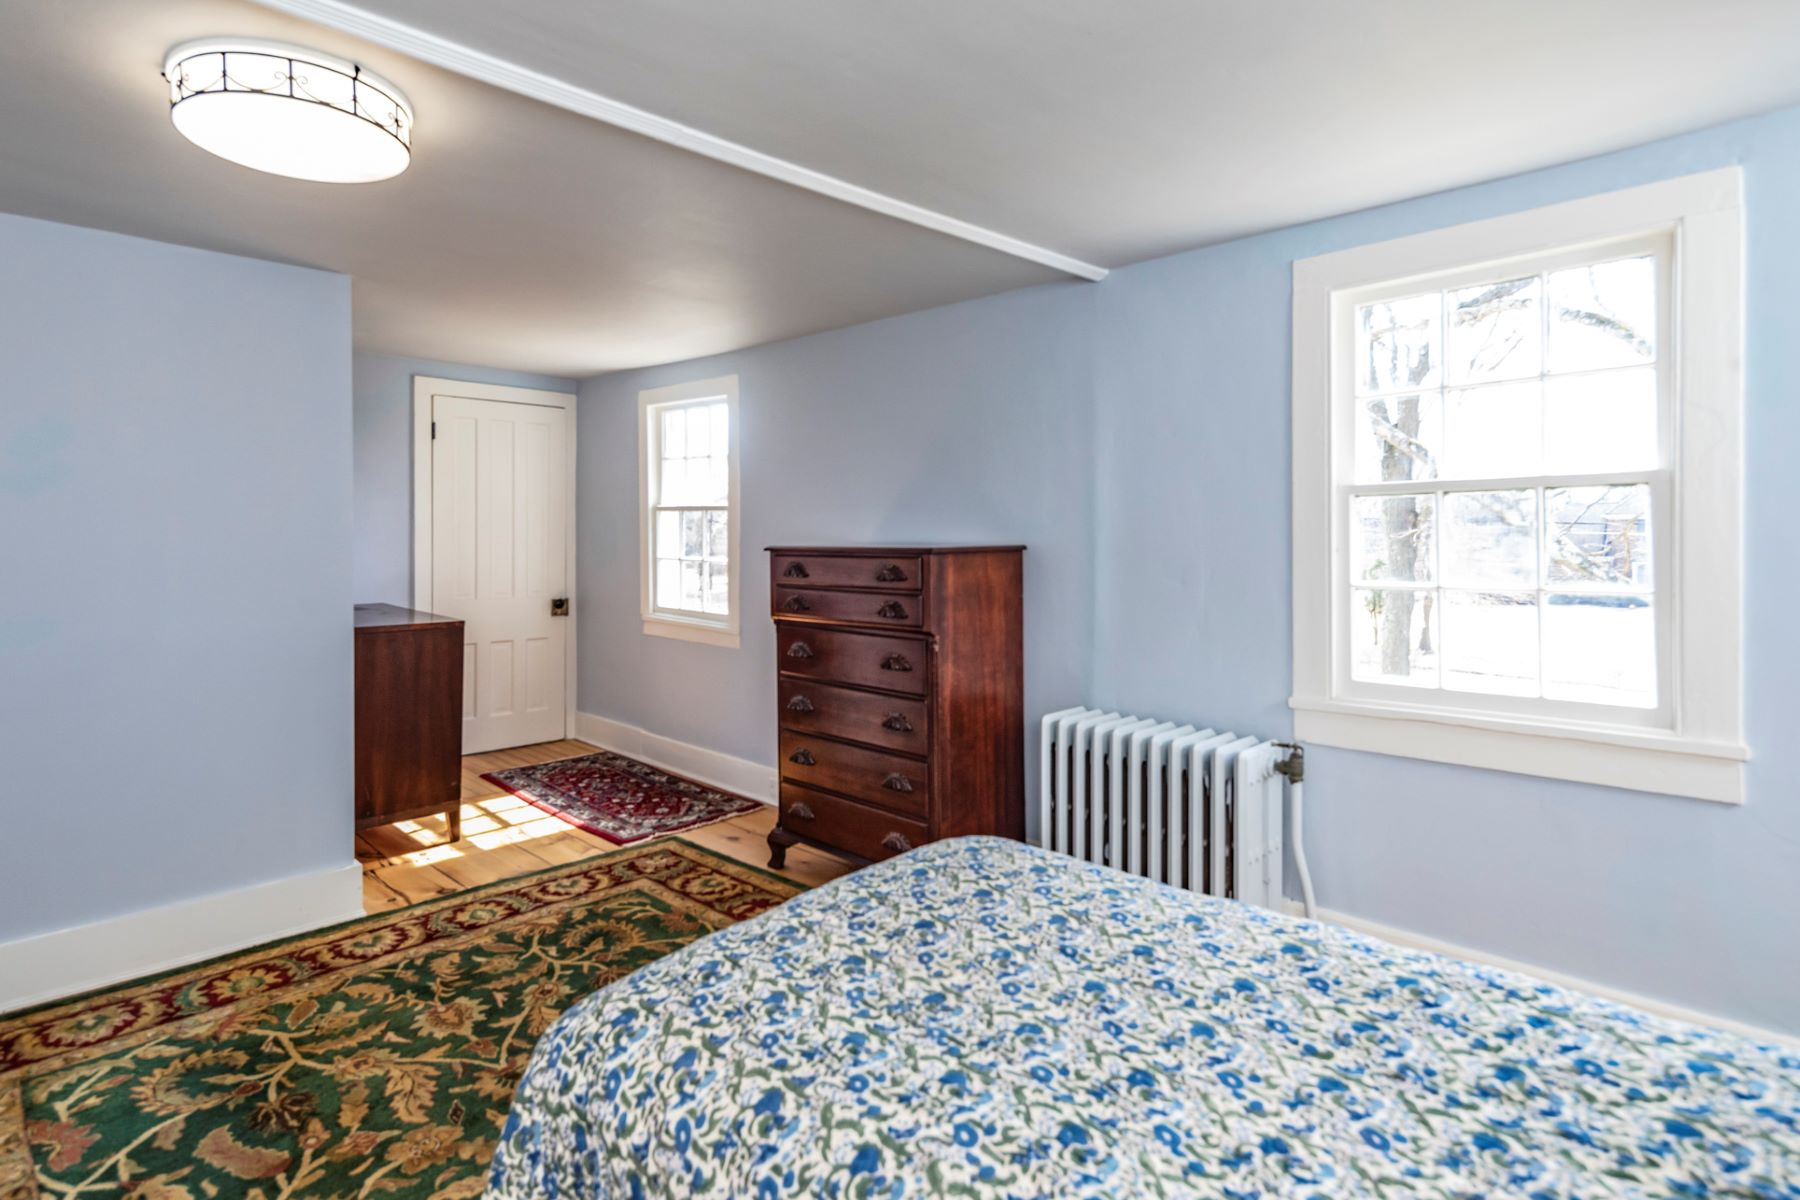 Additional photo for property listing at Hedgecroft: Available For The First Time Since 1968 313 Pennington Titusville Road, Pennington, New Jersey 08534 Amerika Birleşik Devletleri